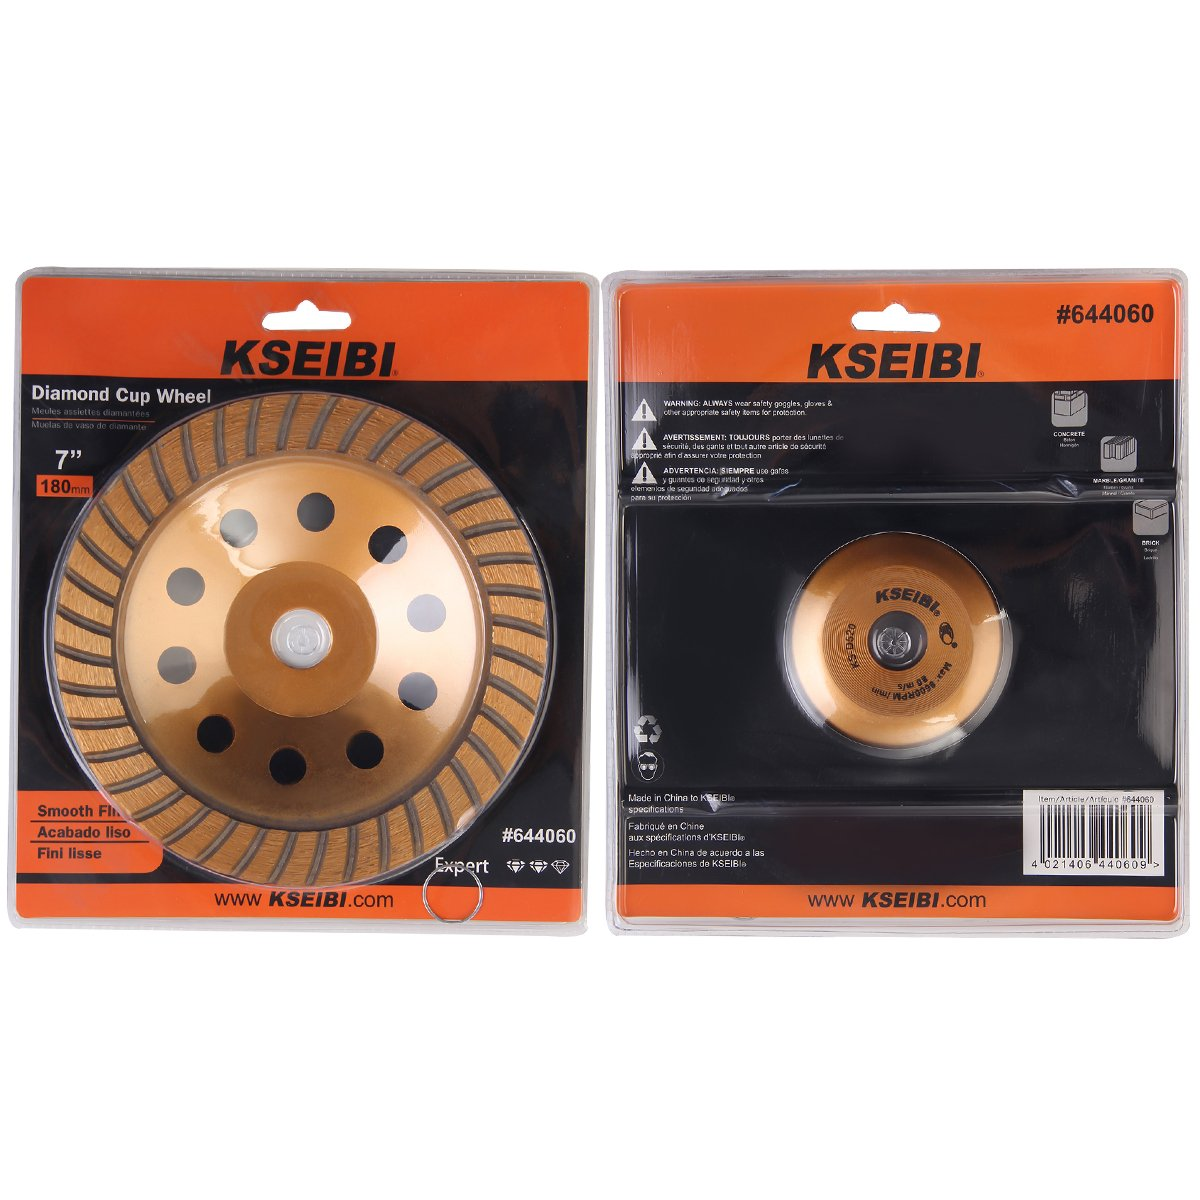 KSEIBI 644060 Super Turbo Diamond Cup wheel 7 Inch (180 mm) With Reduced Ring by KSEIBI (Image #9)